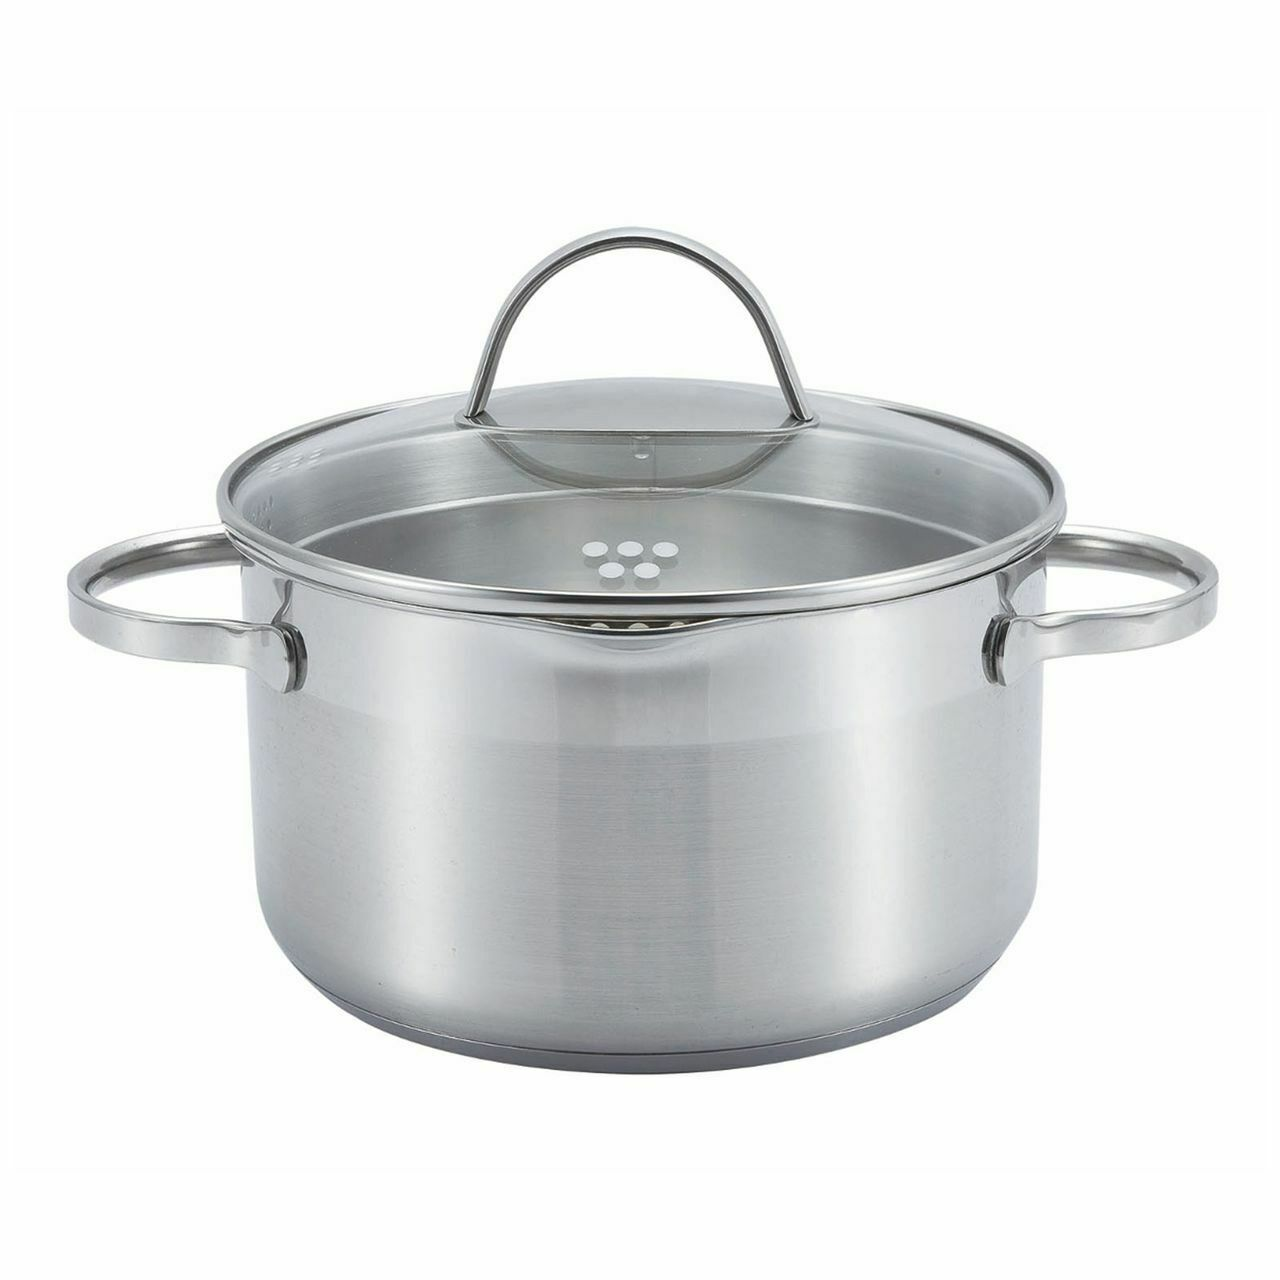 Ssw Comfort Saucepan with Glass Cover, Stainless Steel, Ø 24 cm, 6,1 L